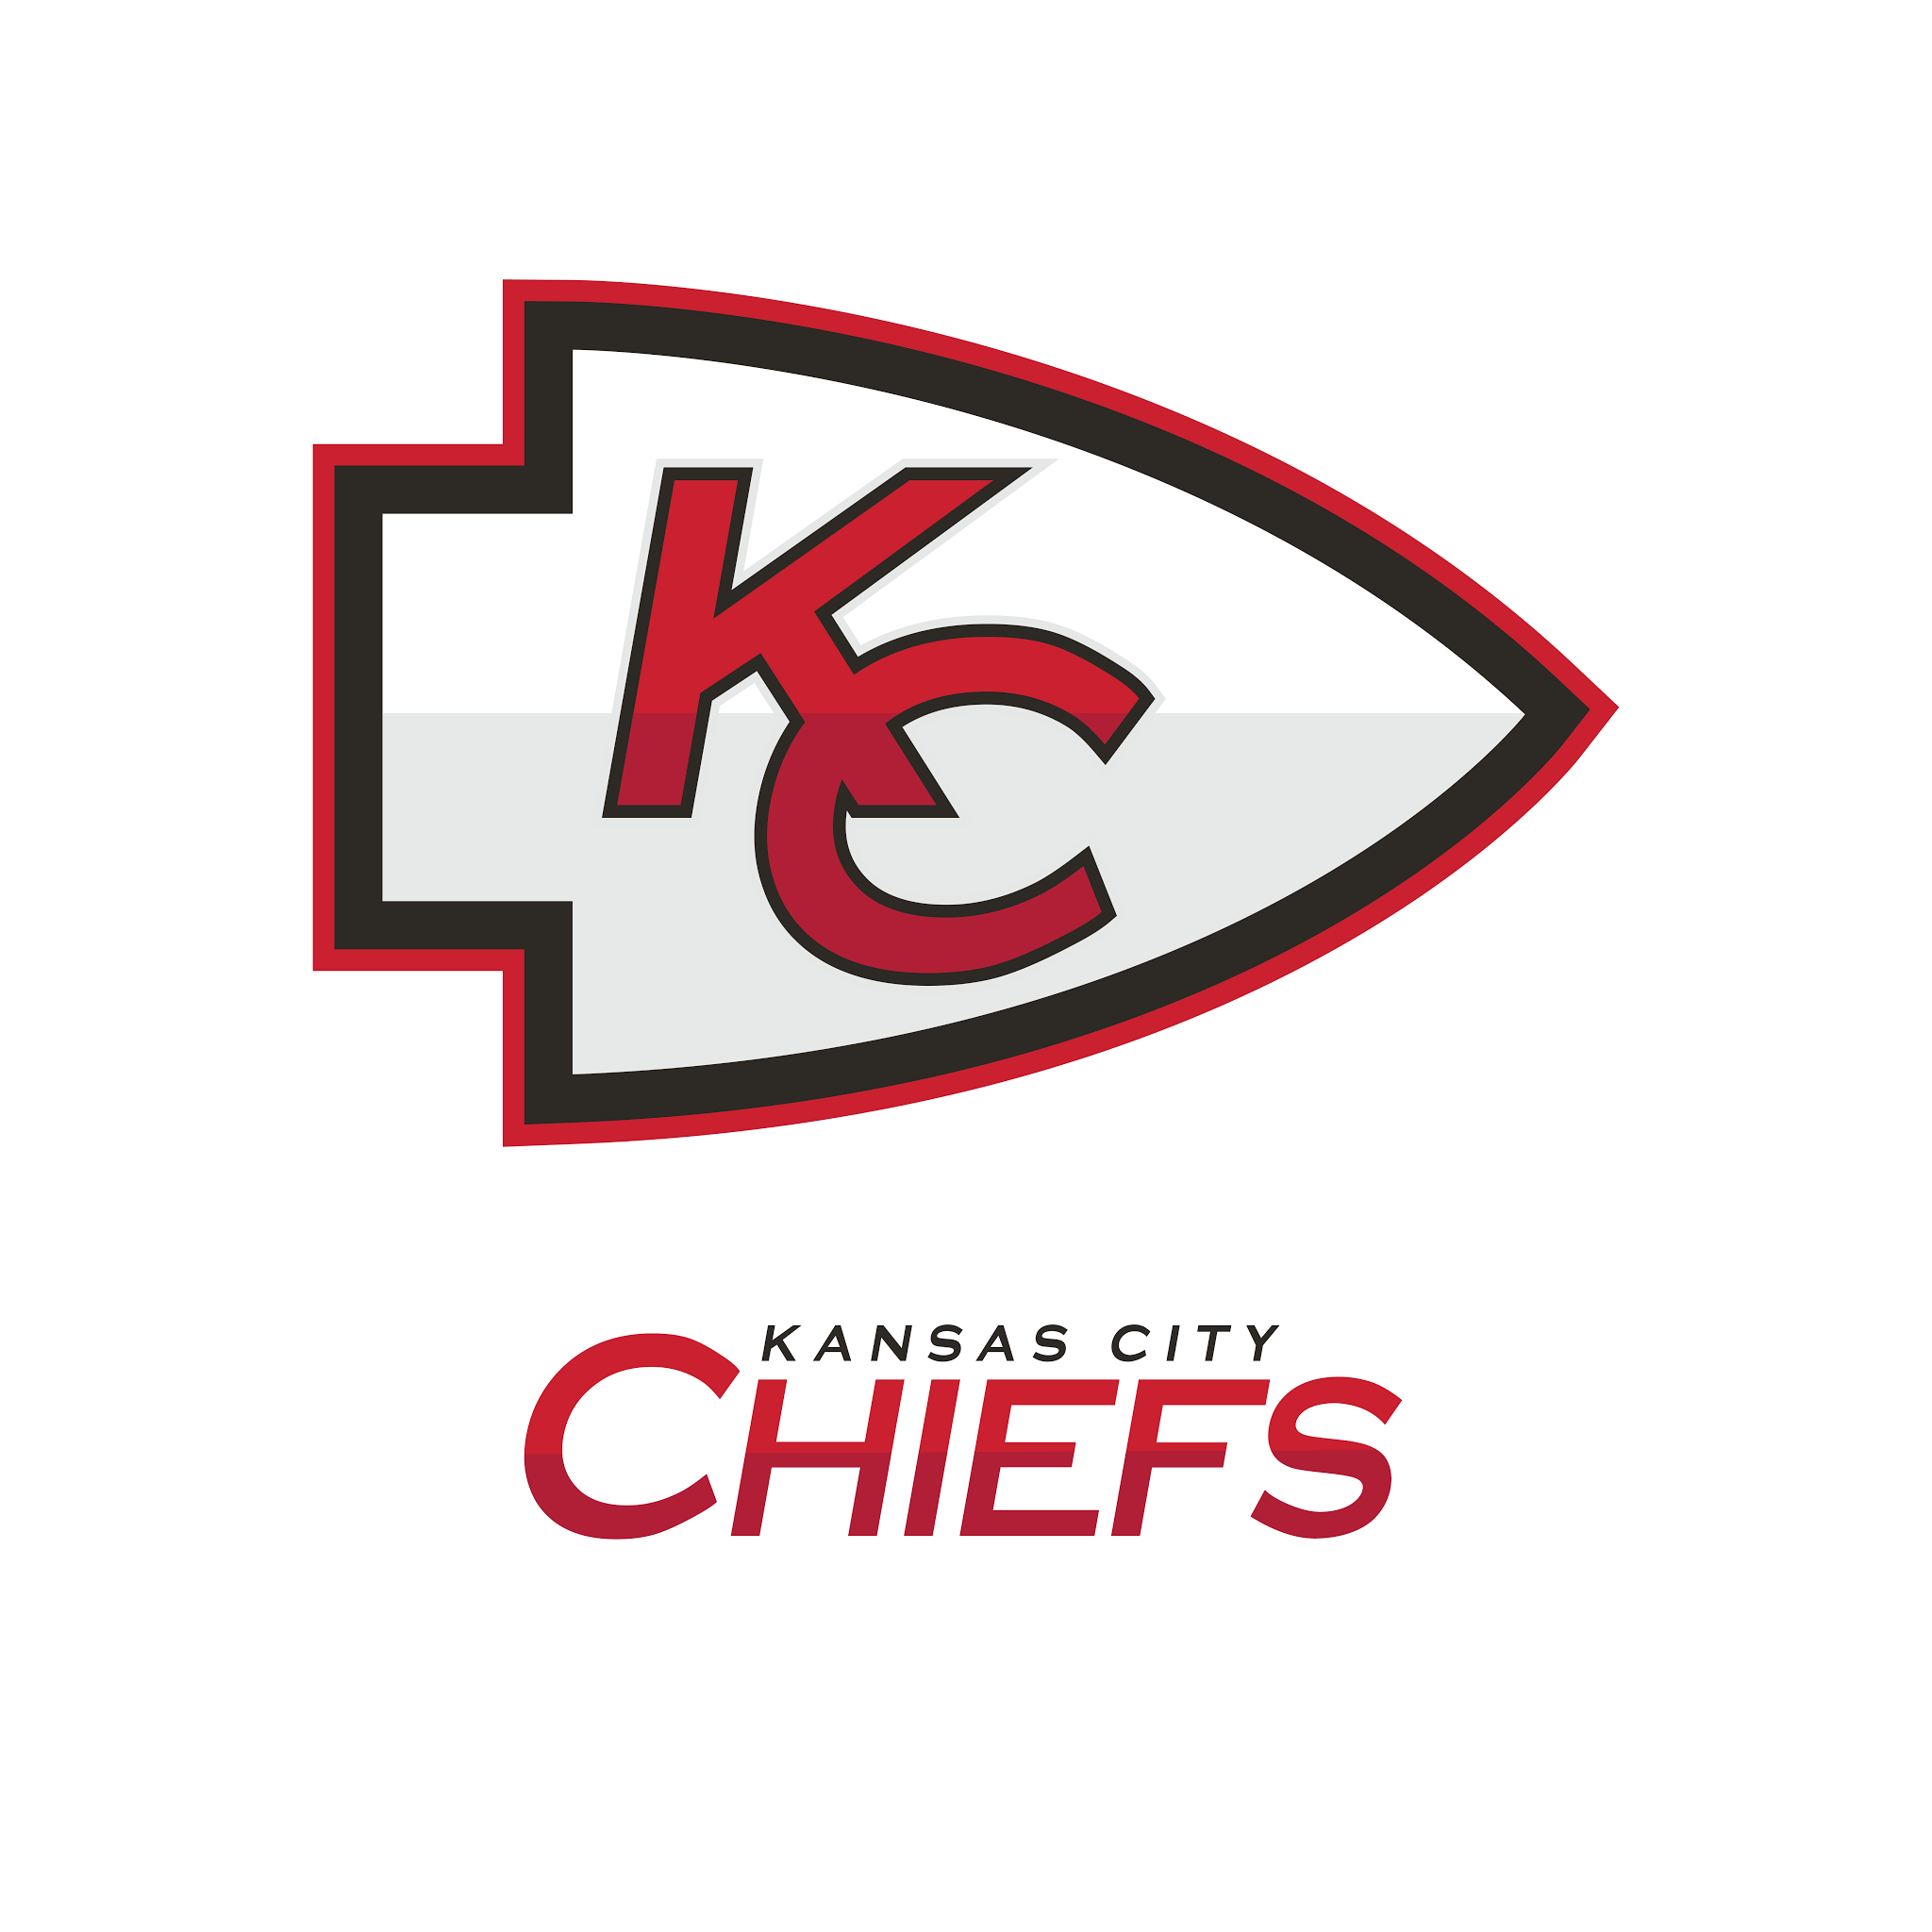 kansas city chiefs logo - photo #8